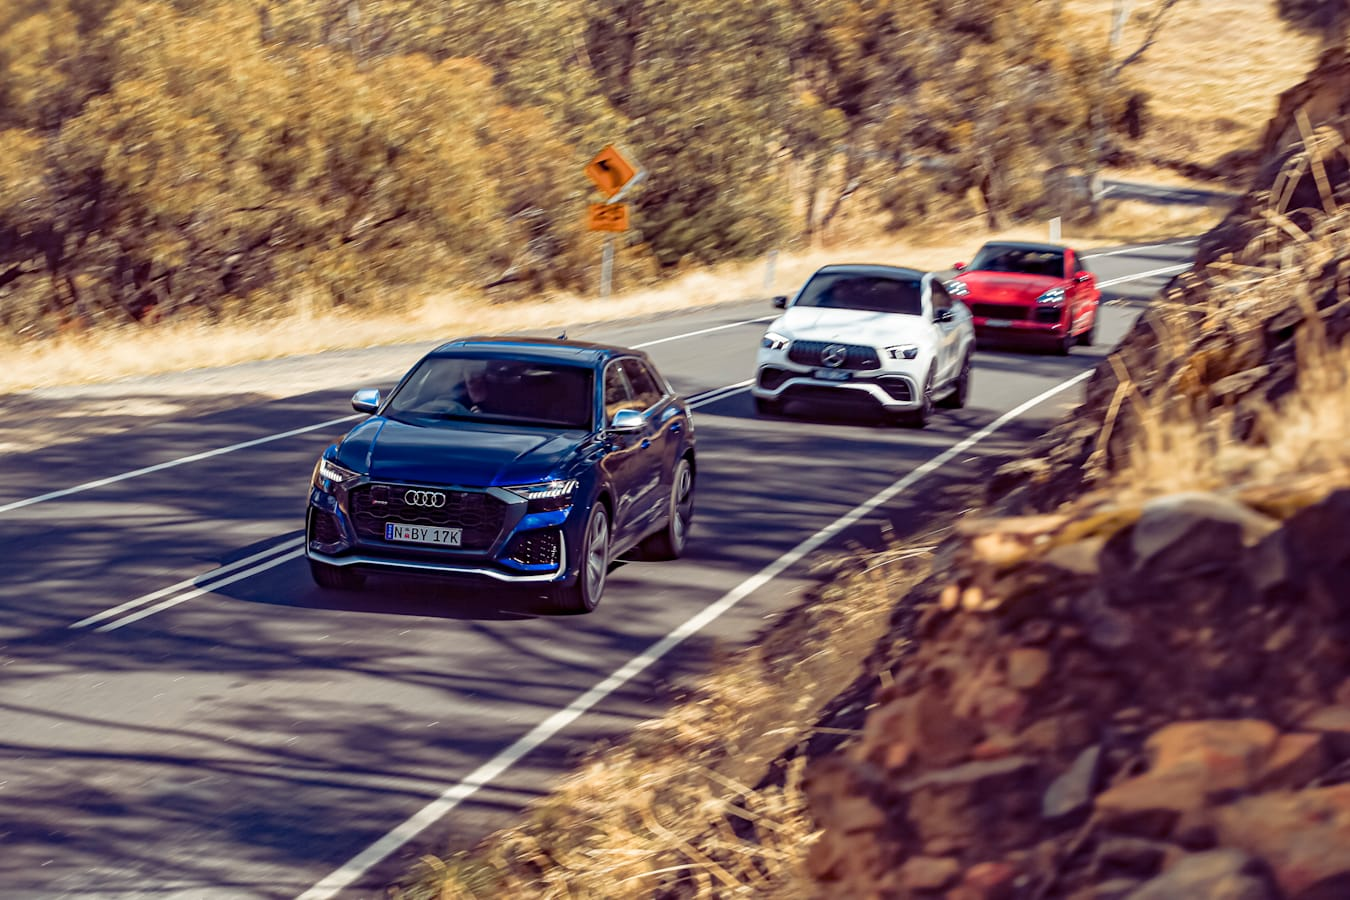 Motor Reviews 2021 Porsche Cayenne GTS Coupe Audi RS Q 8 AMG GLE 63 S Group